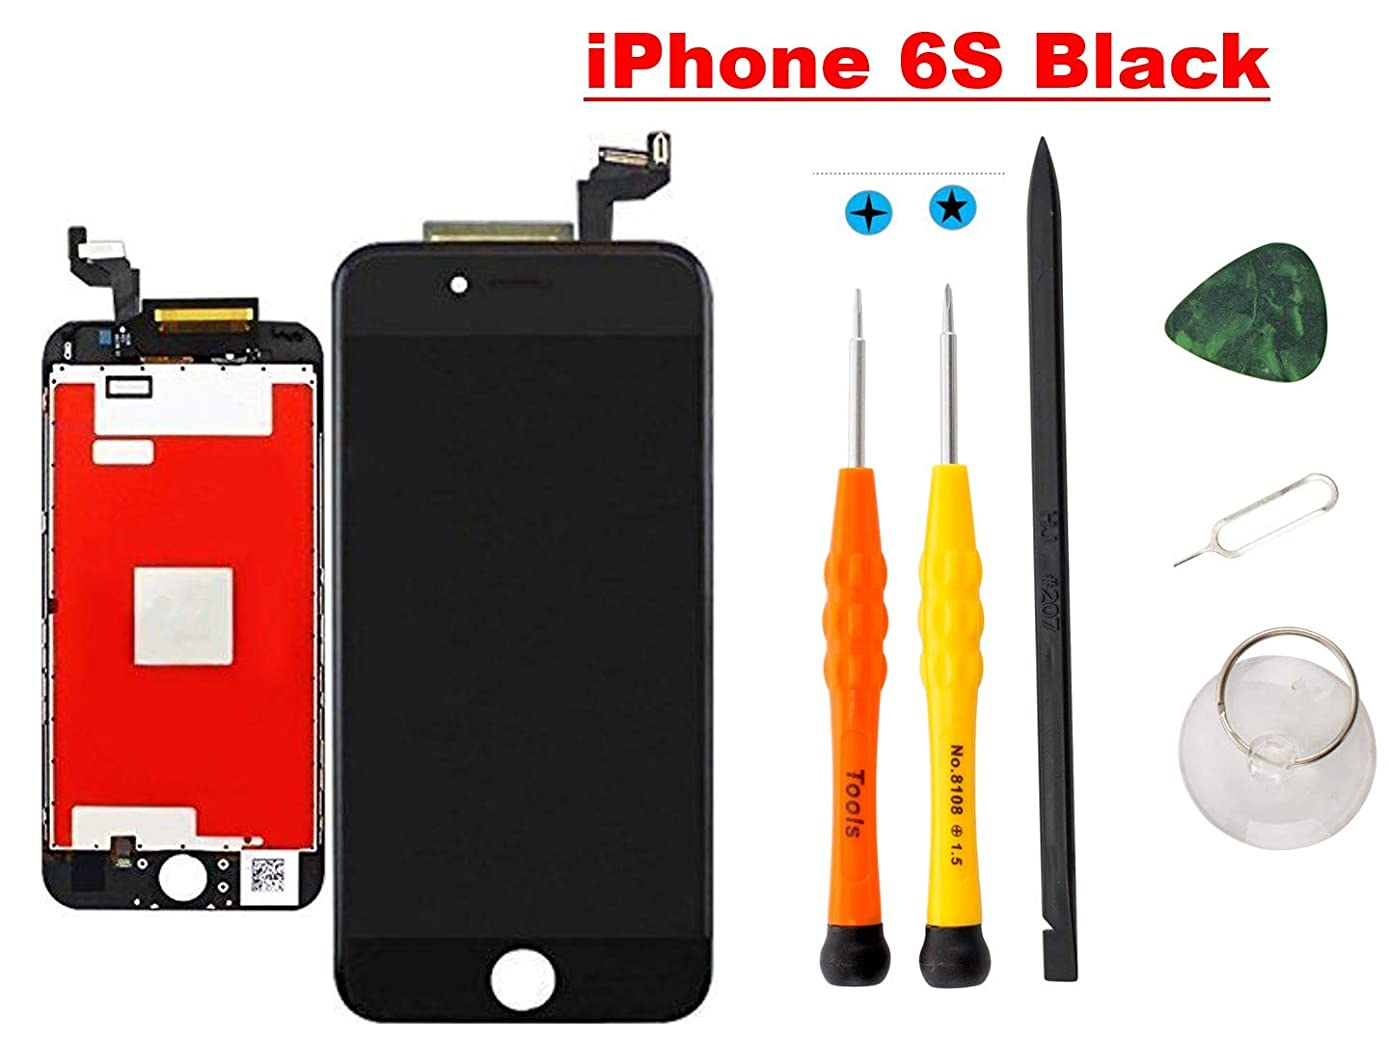 Compatible with iPhone 6S Screen Replacement (4.7 Inch Black), YRYK LCD Digitizer Touch Screen Assembly Set with 3D Touch, Repair Tools and Professional Replacement Manual Include